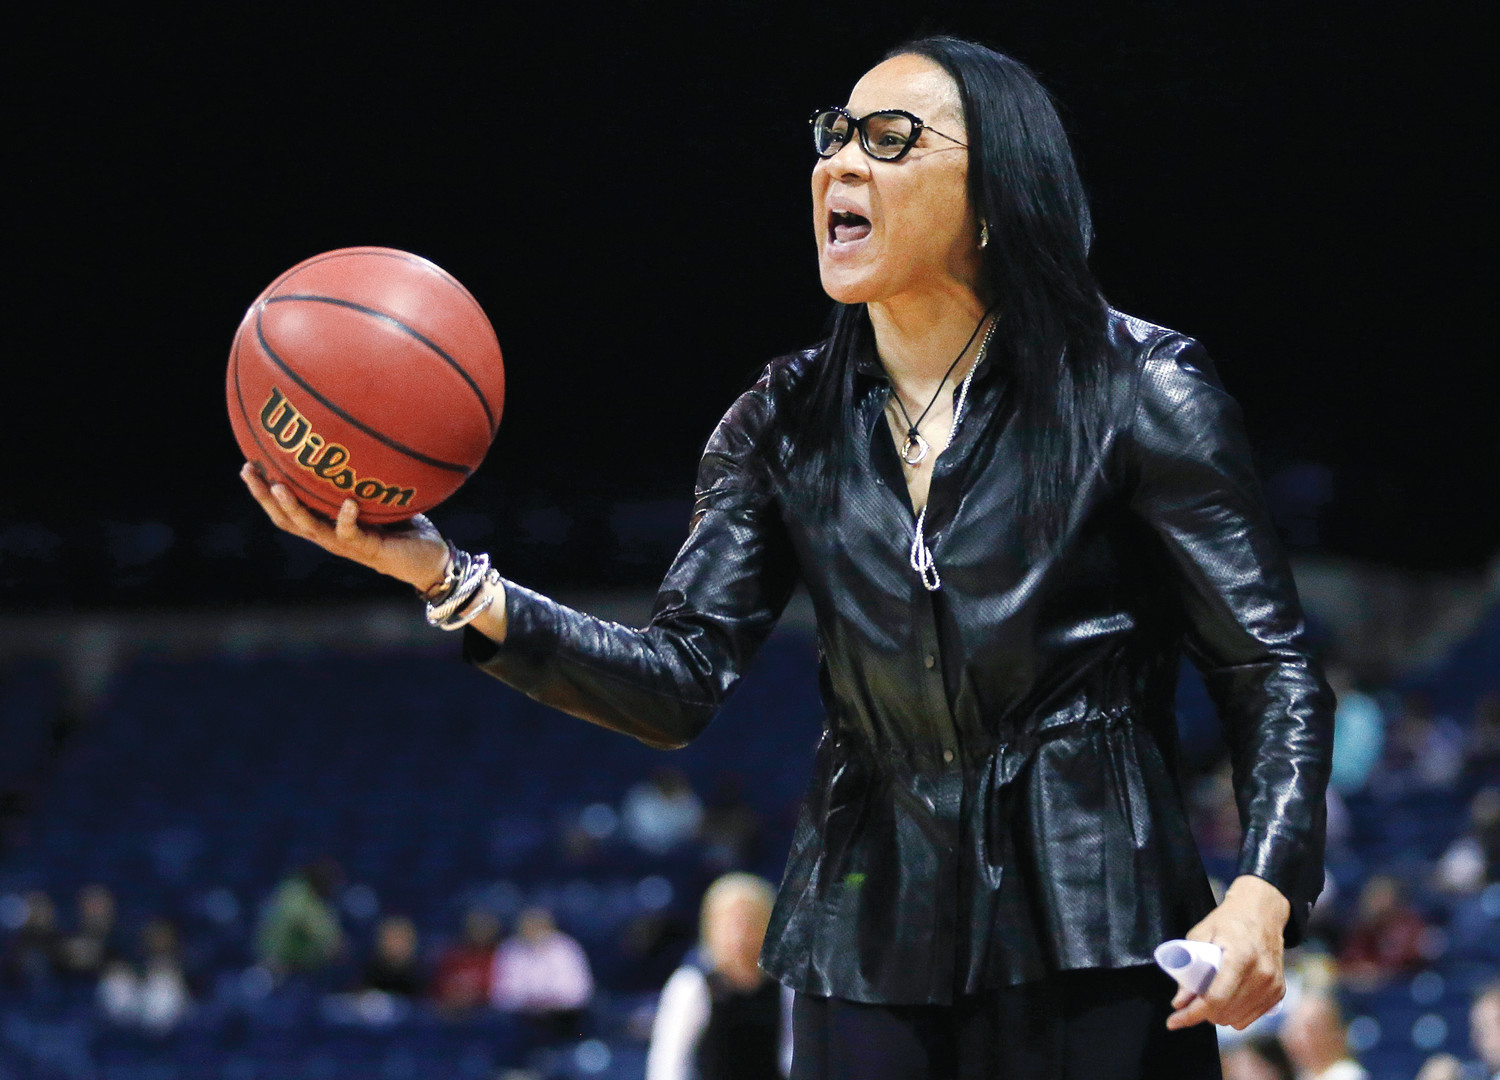 South Carolina head coach Dawn Staley protest a foul during the second half of a 2017 regional final against Florida State in the NCAA women's college basketball tournament in Stockton, California. Staley and the Gamecocks have been preparing to play No. 1 UConn while the coach dealt with comments by Missouri athletic director Jim Sterk's comments that she fostered a hostile atmosphere during last Sunday's game against the Tigers.